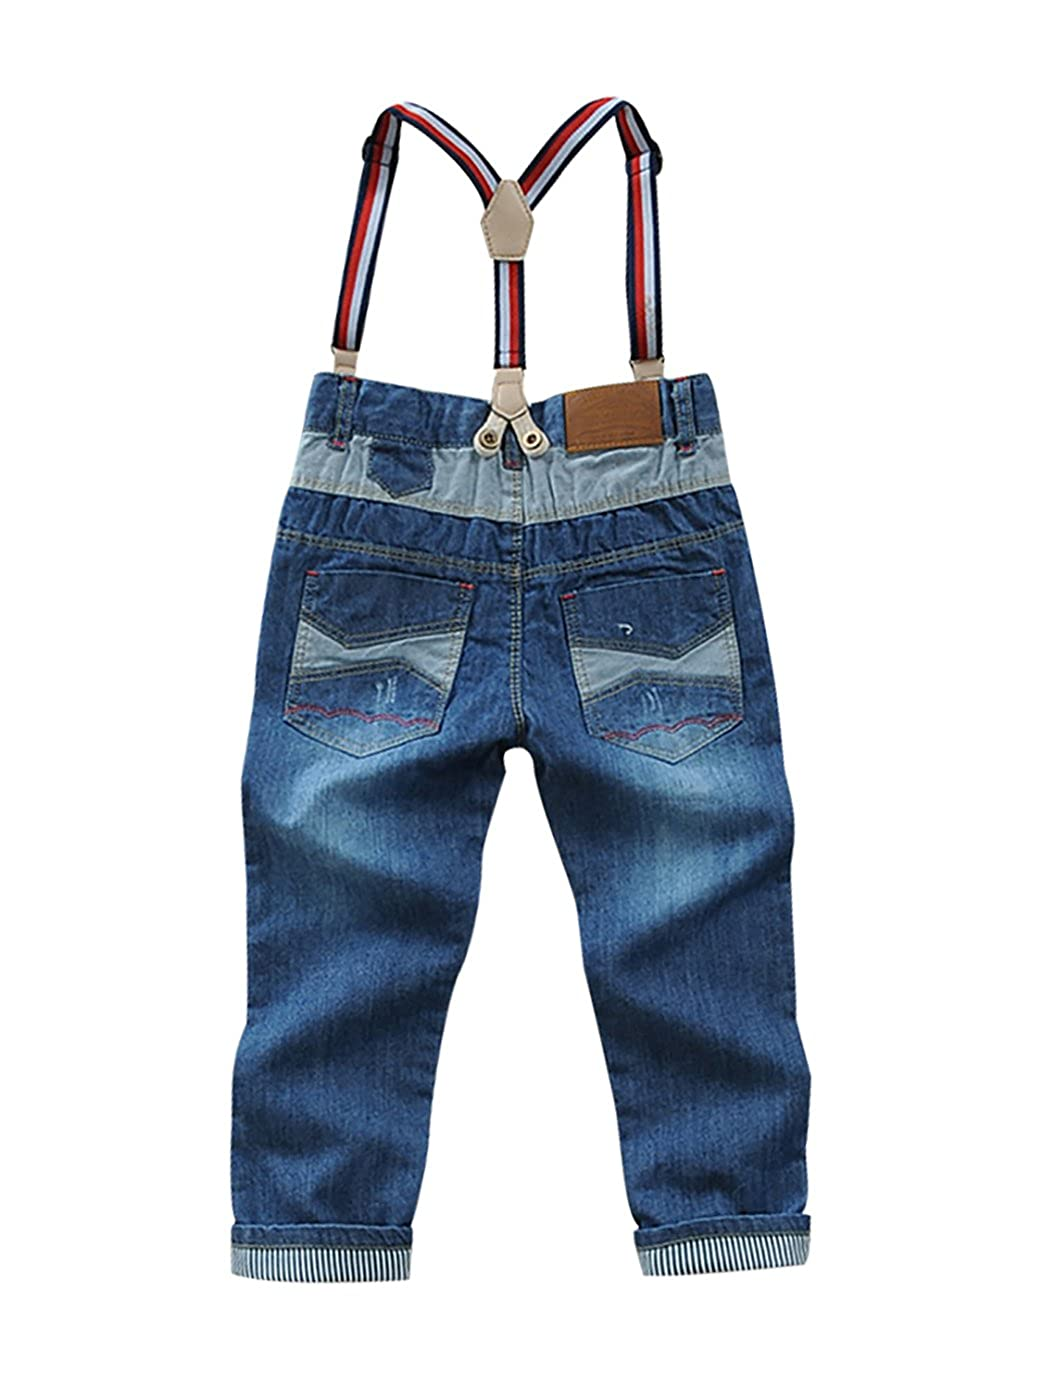 LISUEYNE Baby Boy Summer Spring Casual Blue Jean Long Holey Ripped Basic Strap Jeans Elastic Band Denim Long Jeans for Boys